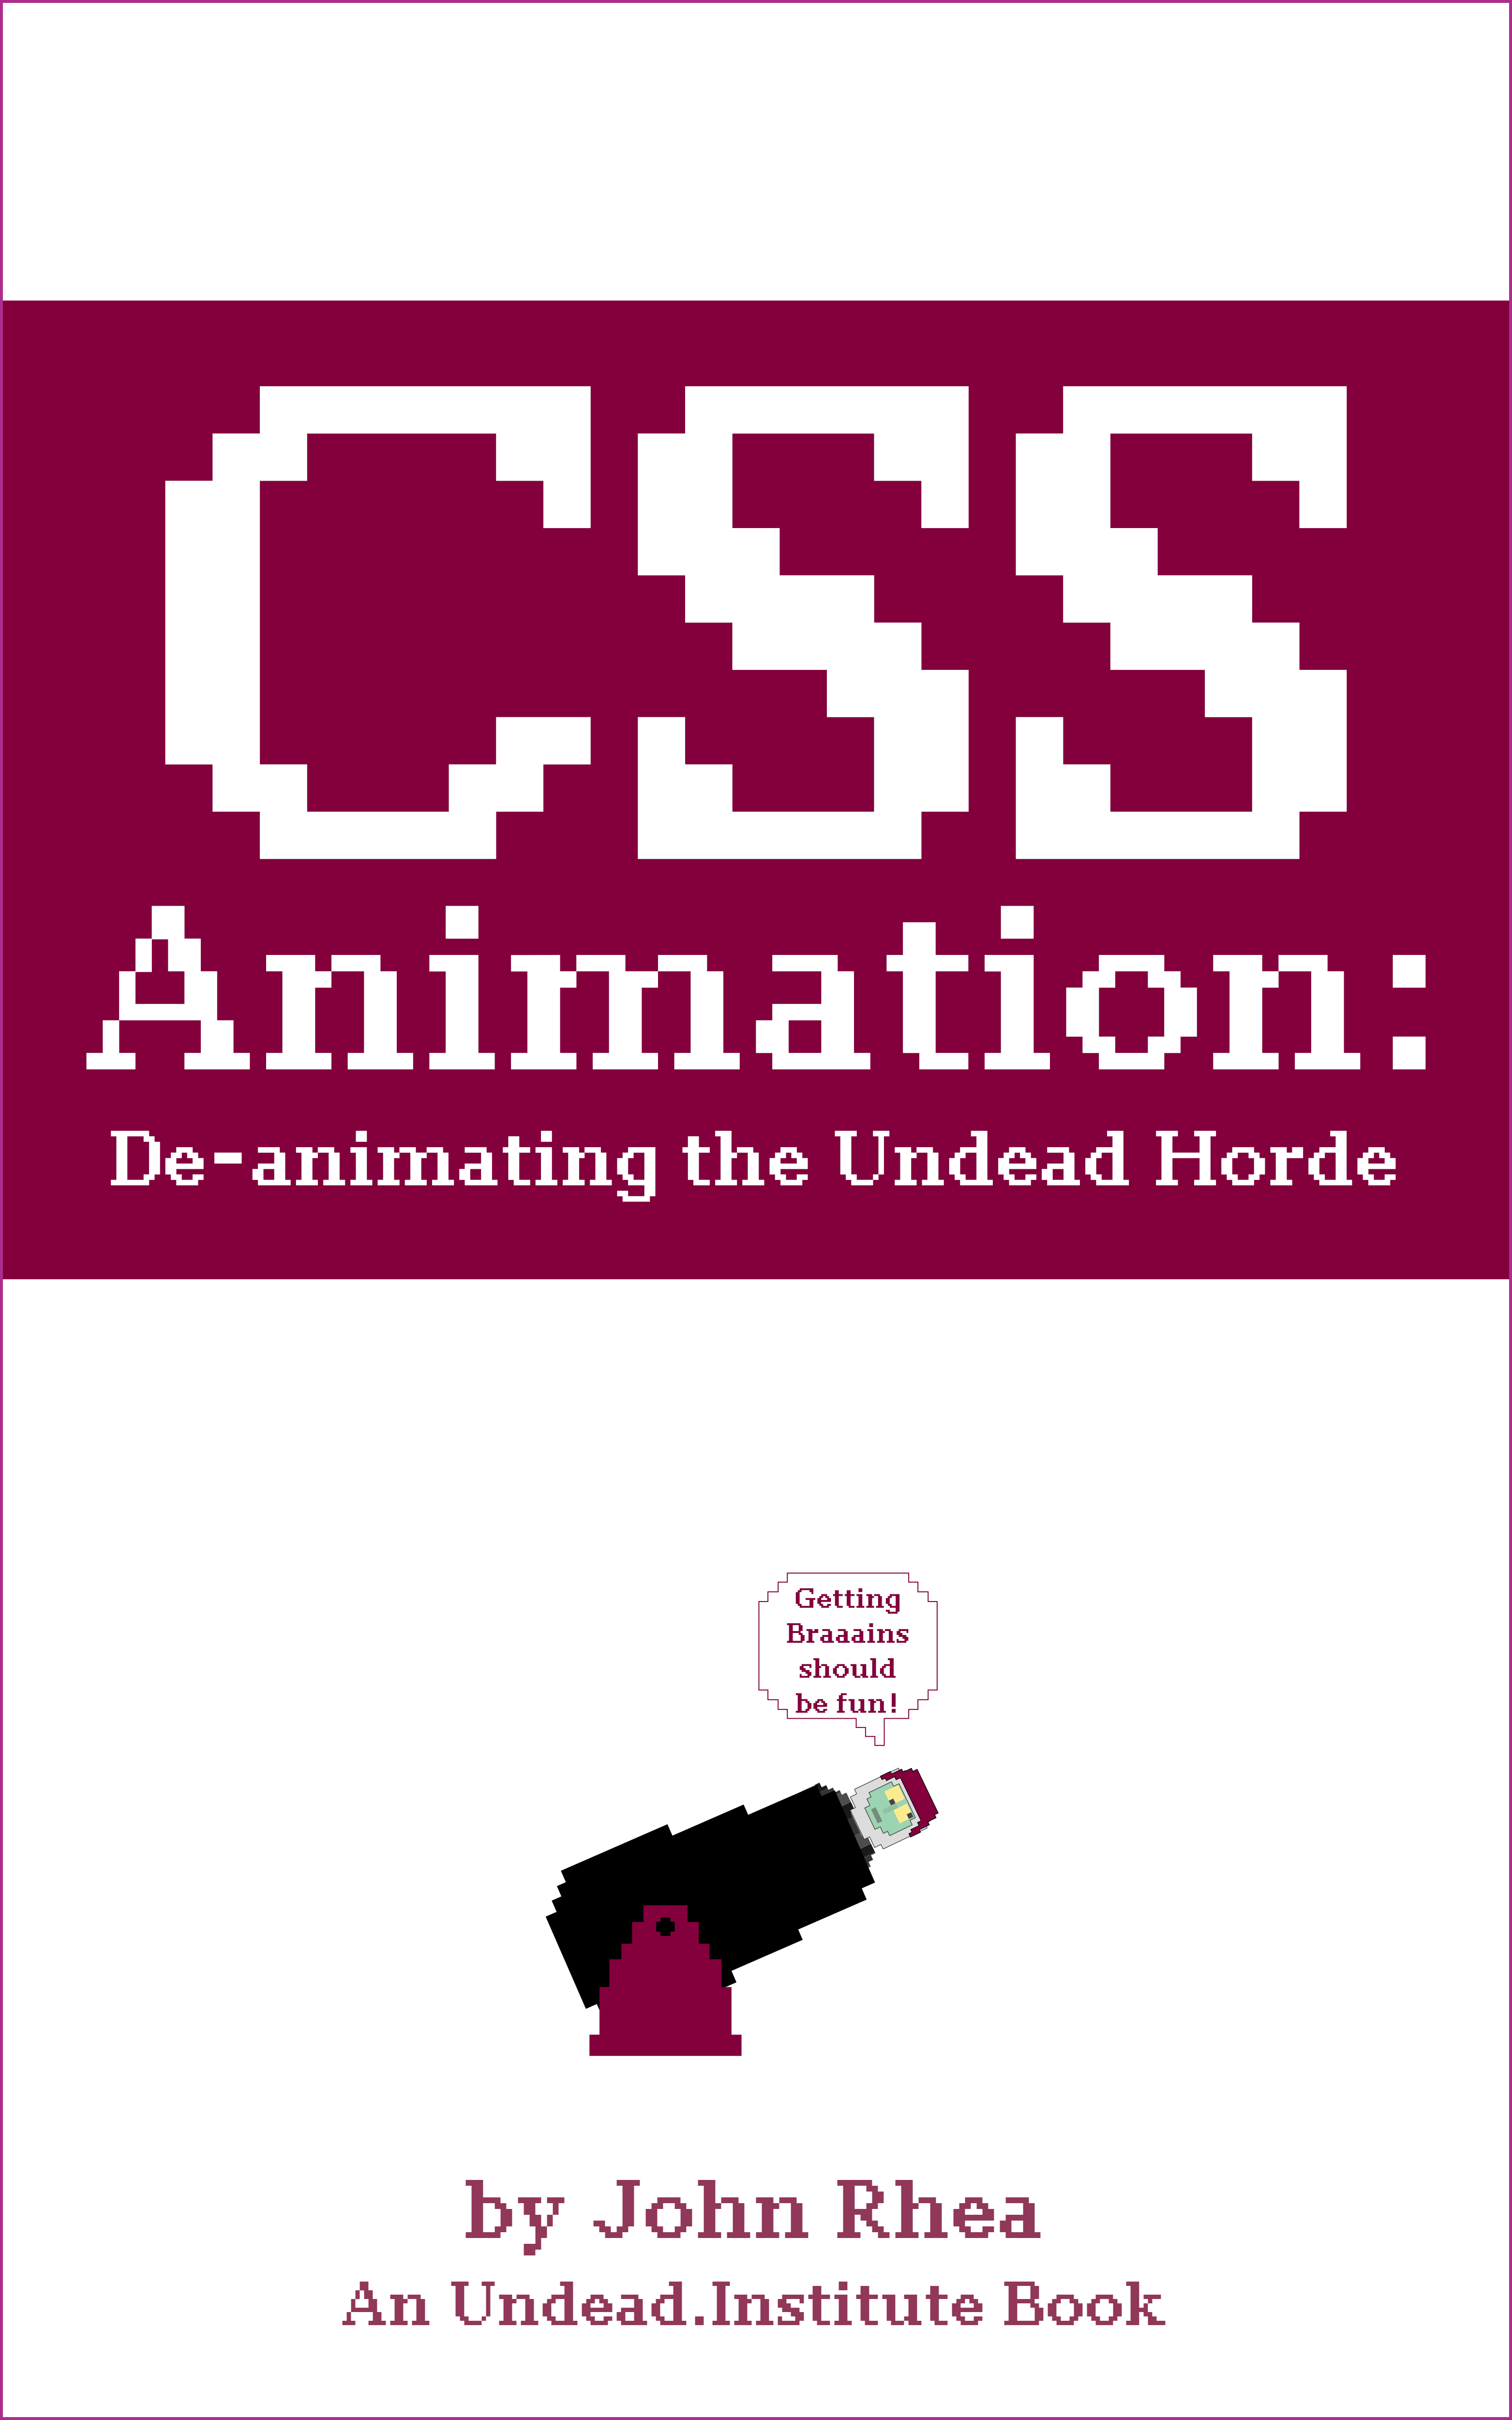 CSS Animation: De-animating the Undead Horde